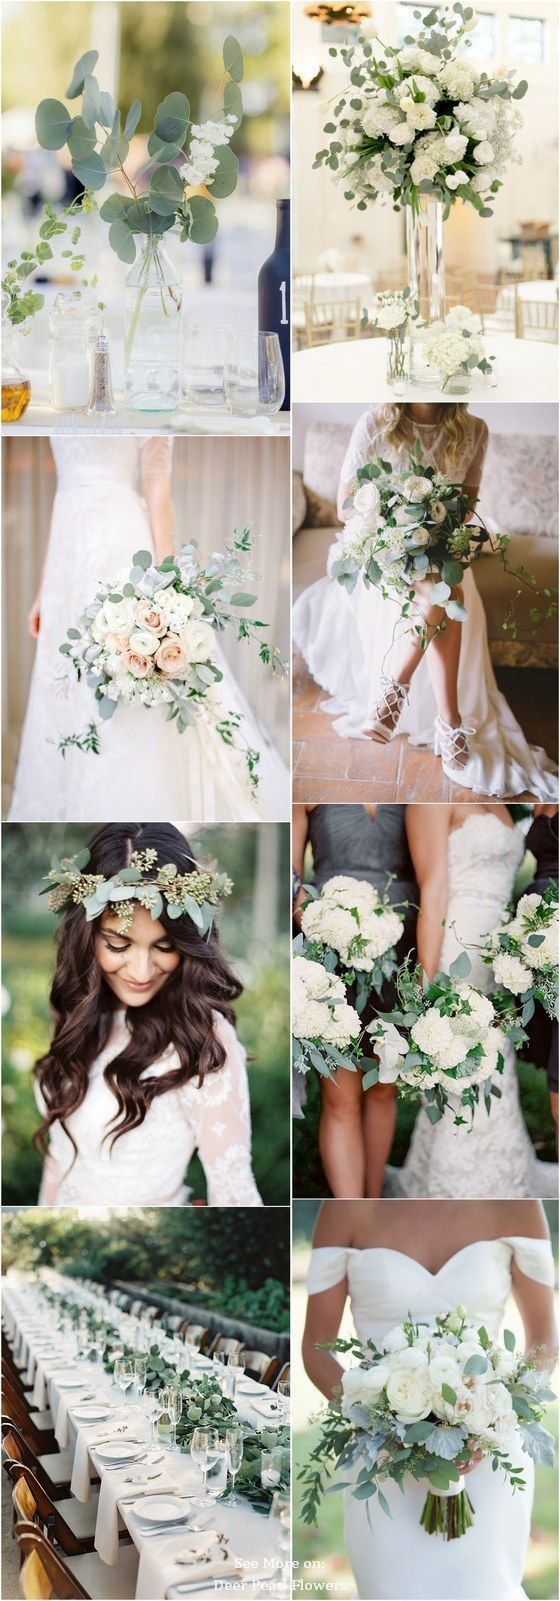 Wedding decorations green  Eucalyptus green wedding color ideas  erpearlflowers